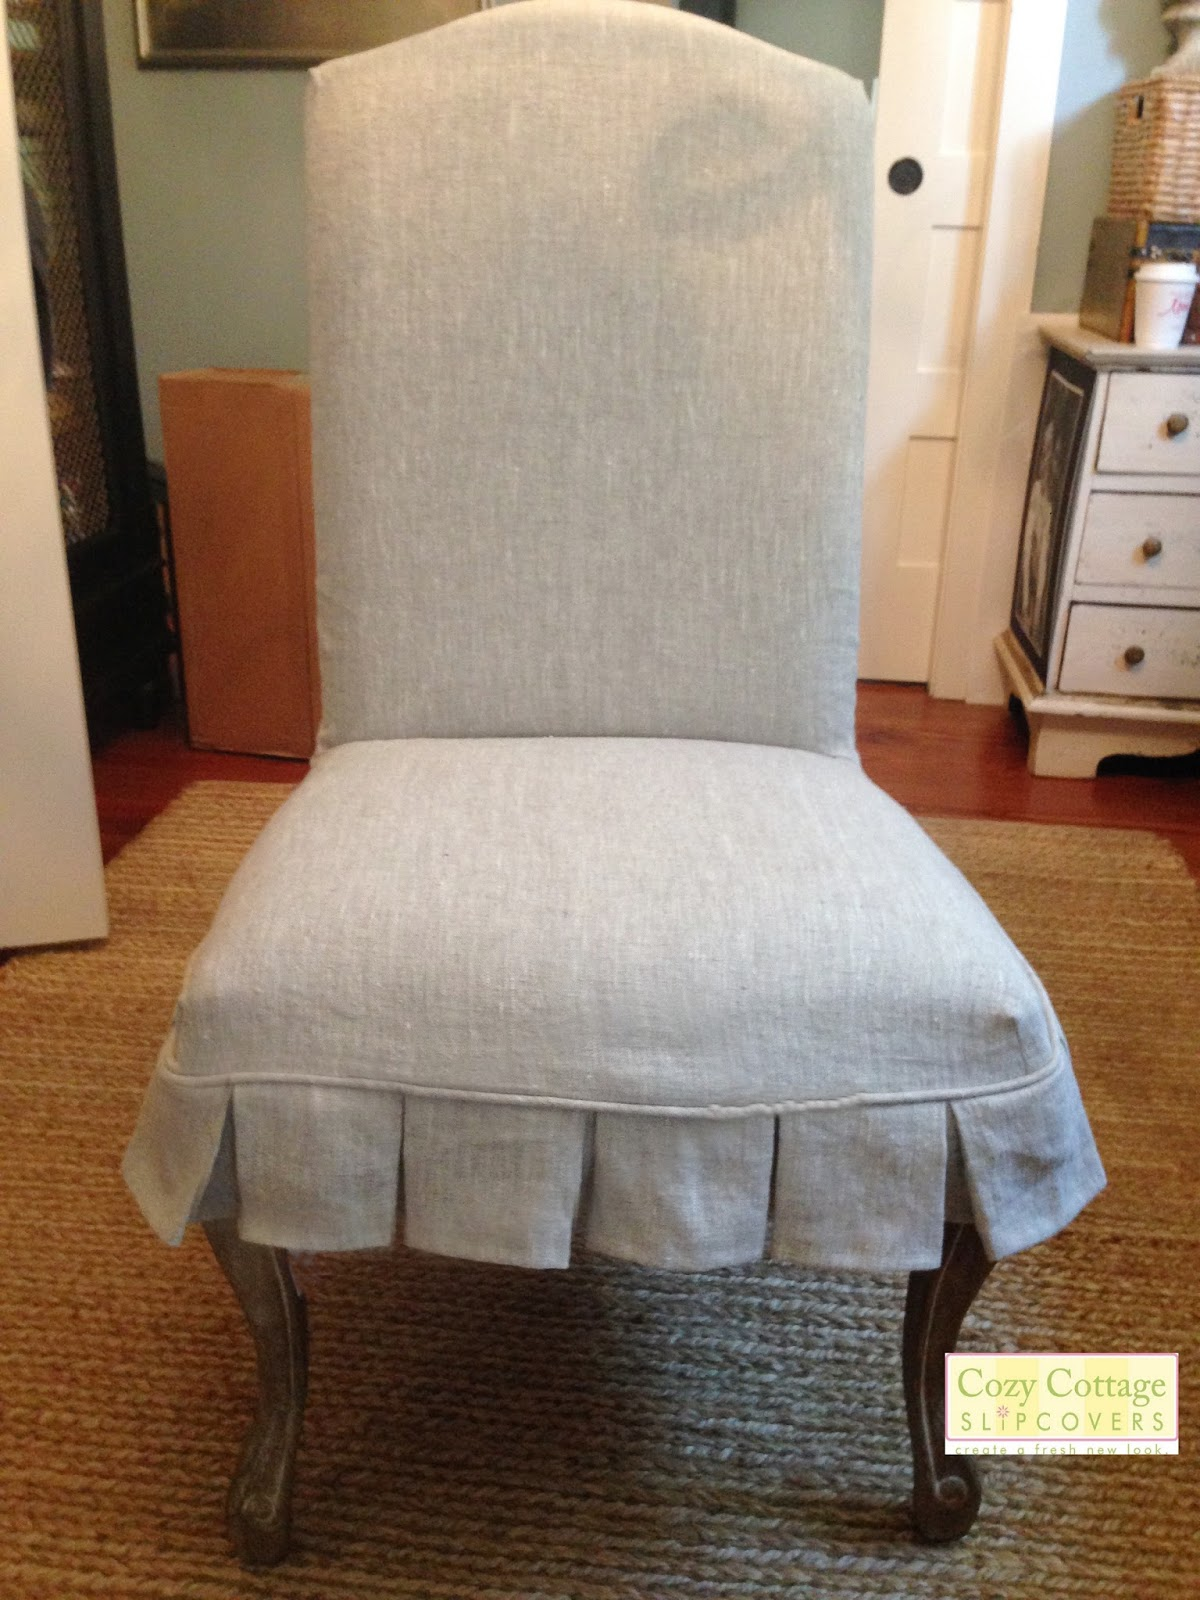 Cozy Cottage Slipcovers Rustic Linen Slipcovers